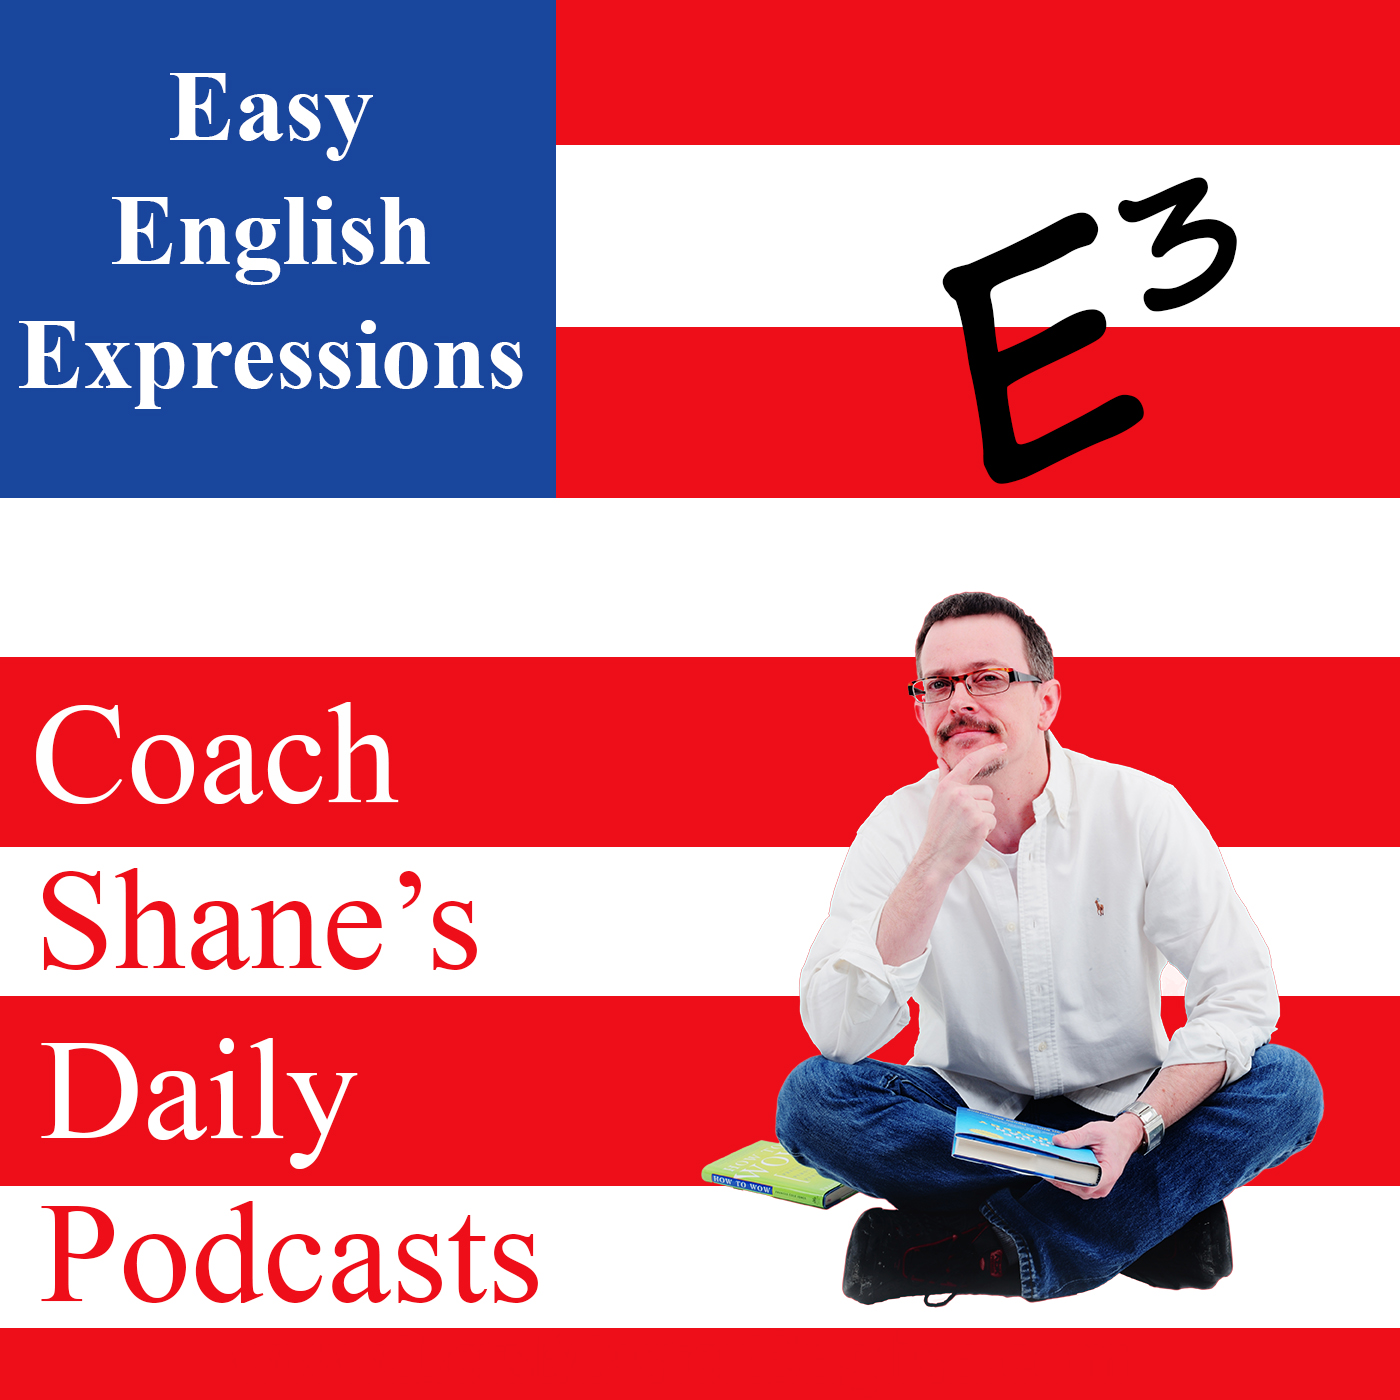 29 Daily Easy English Expression PODCAST—Are you done yet?